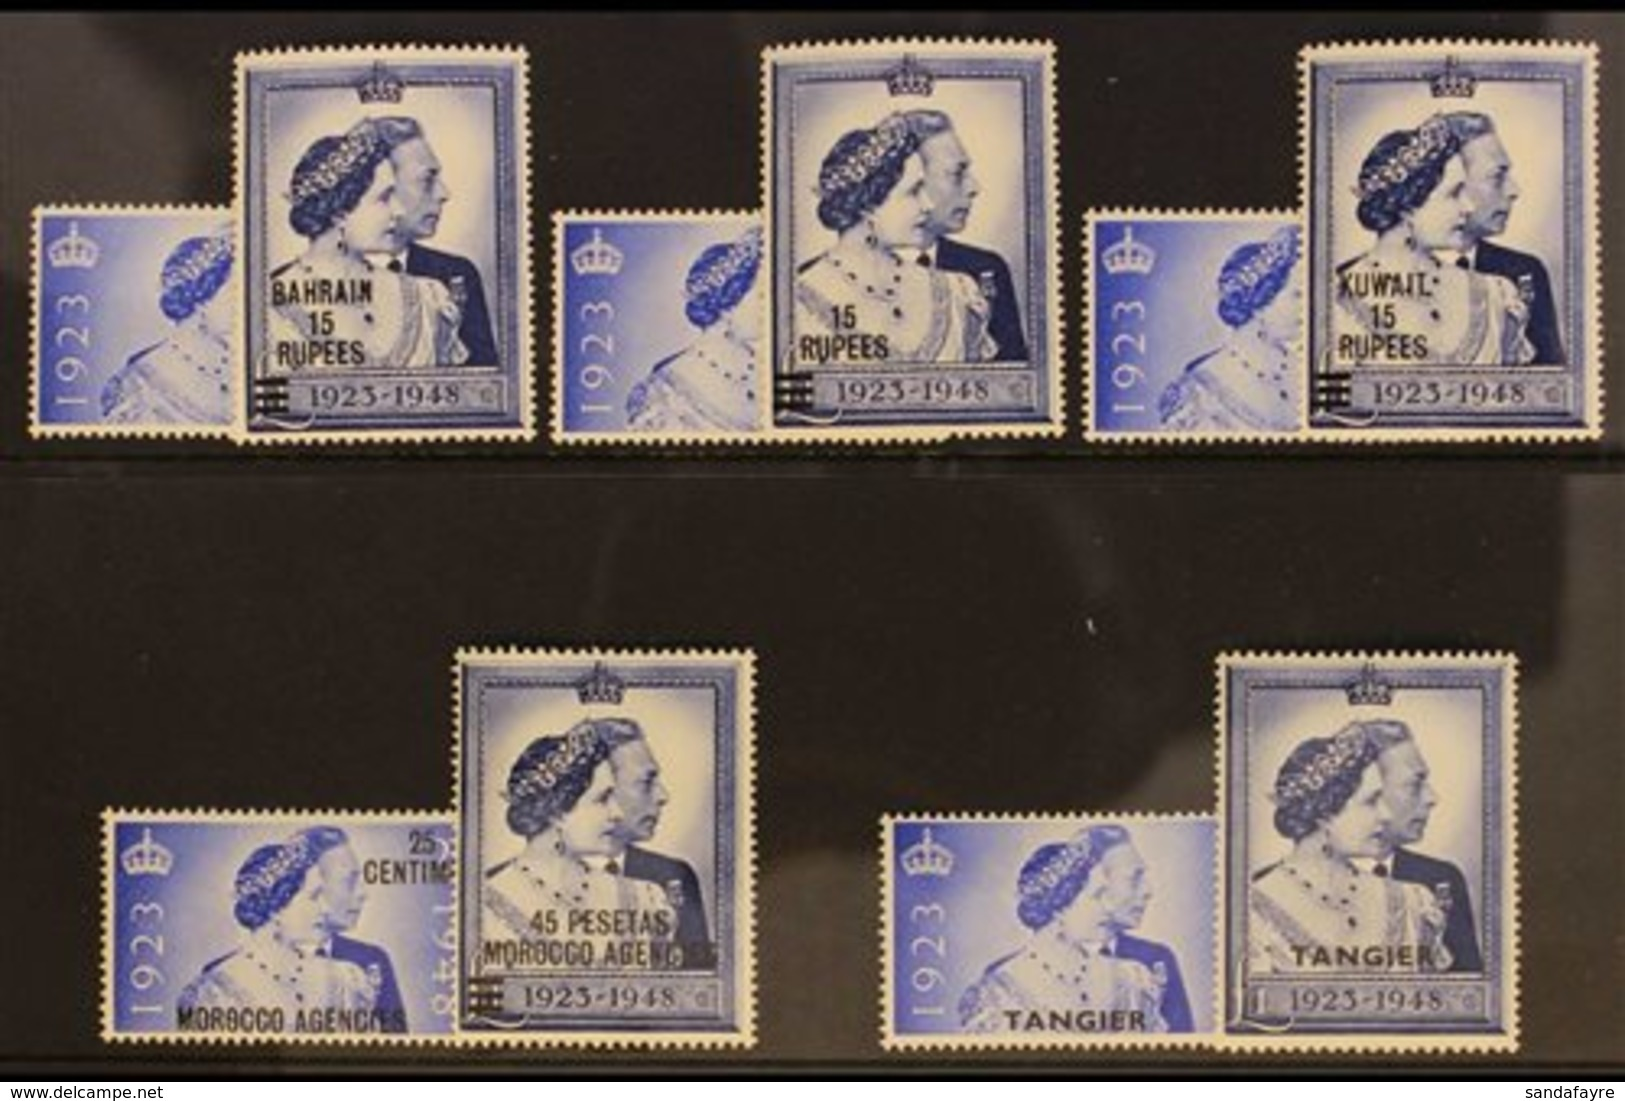 1948 WEDDING OVERPRINTED ON GB ISSUES. The GB 1948 Wedding Sets Surcharged For Bahrain, Br PA's In Eastern Arabia, Kuwai - Stamps